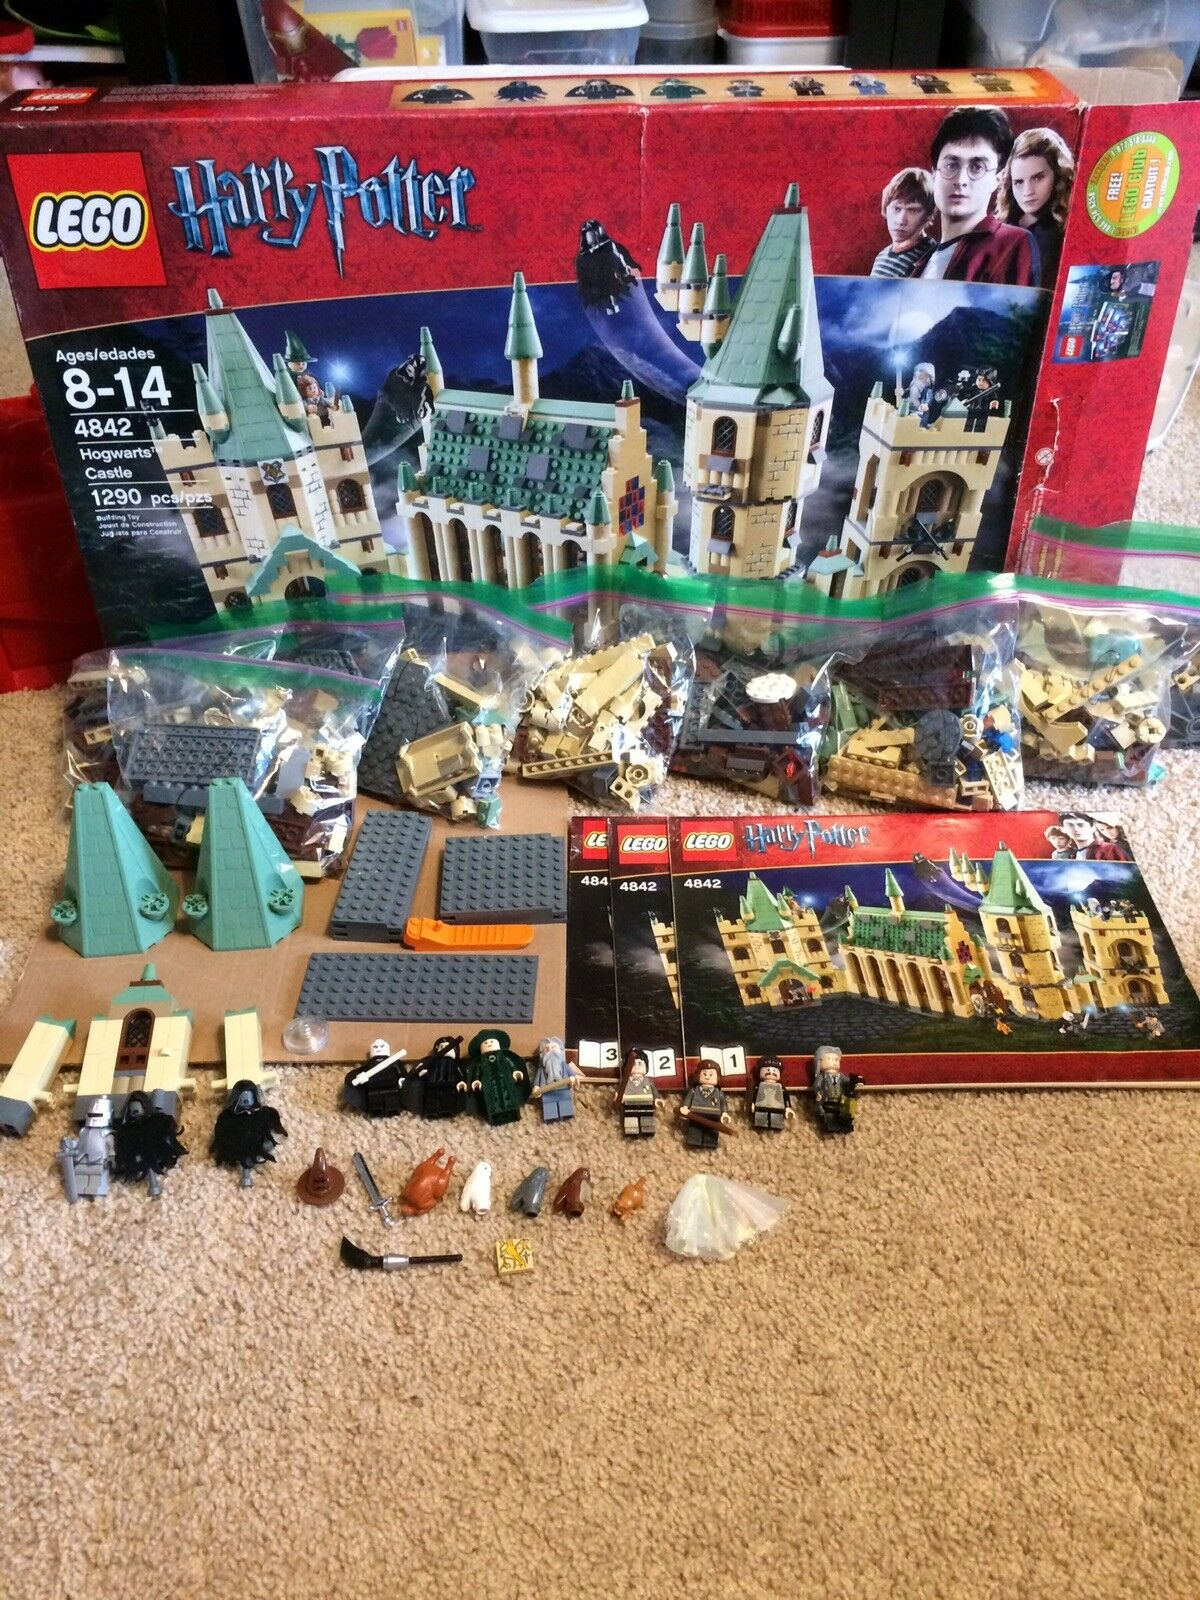 LEGO Harry Potter Hogwart's Castle 2010  4842  Used and 100% Complete